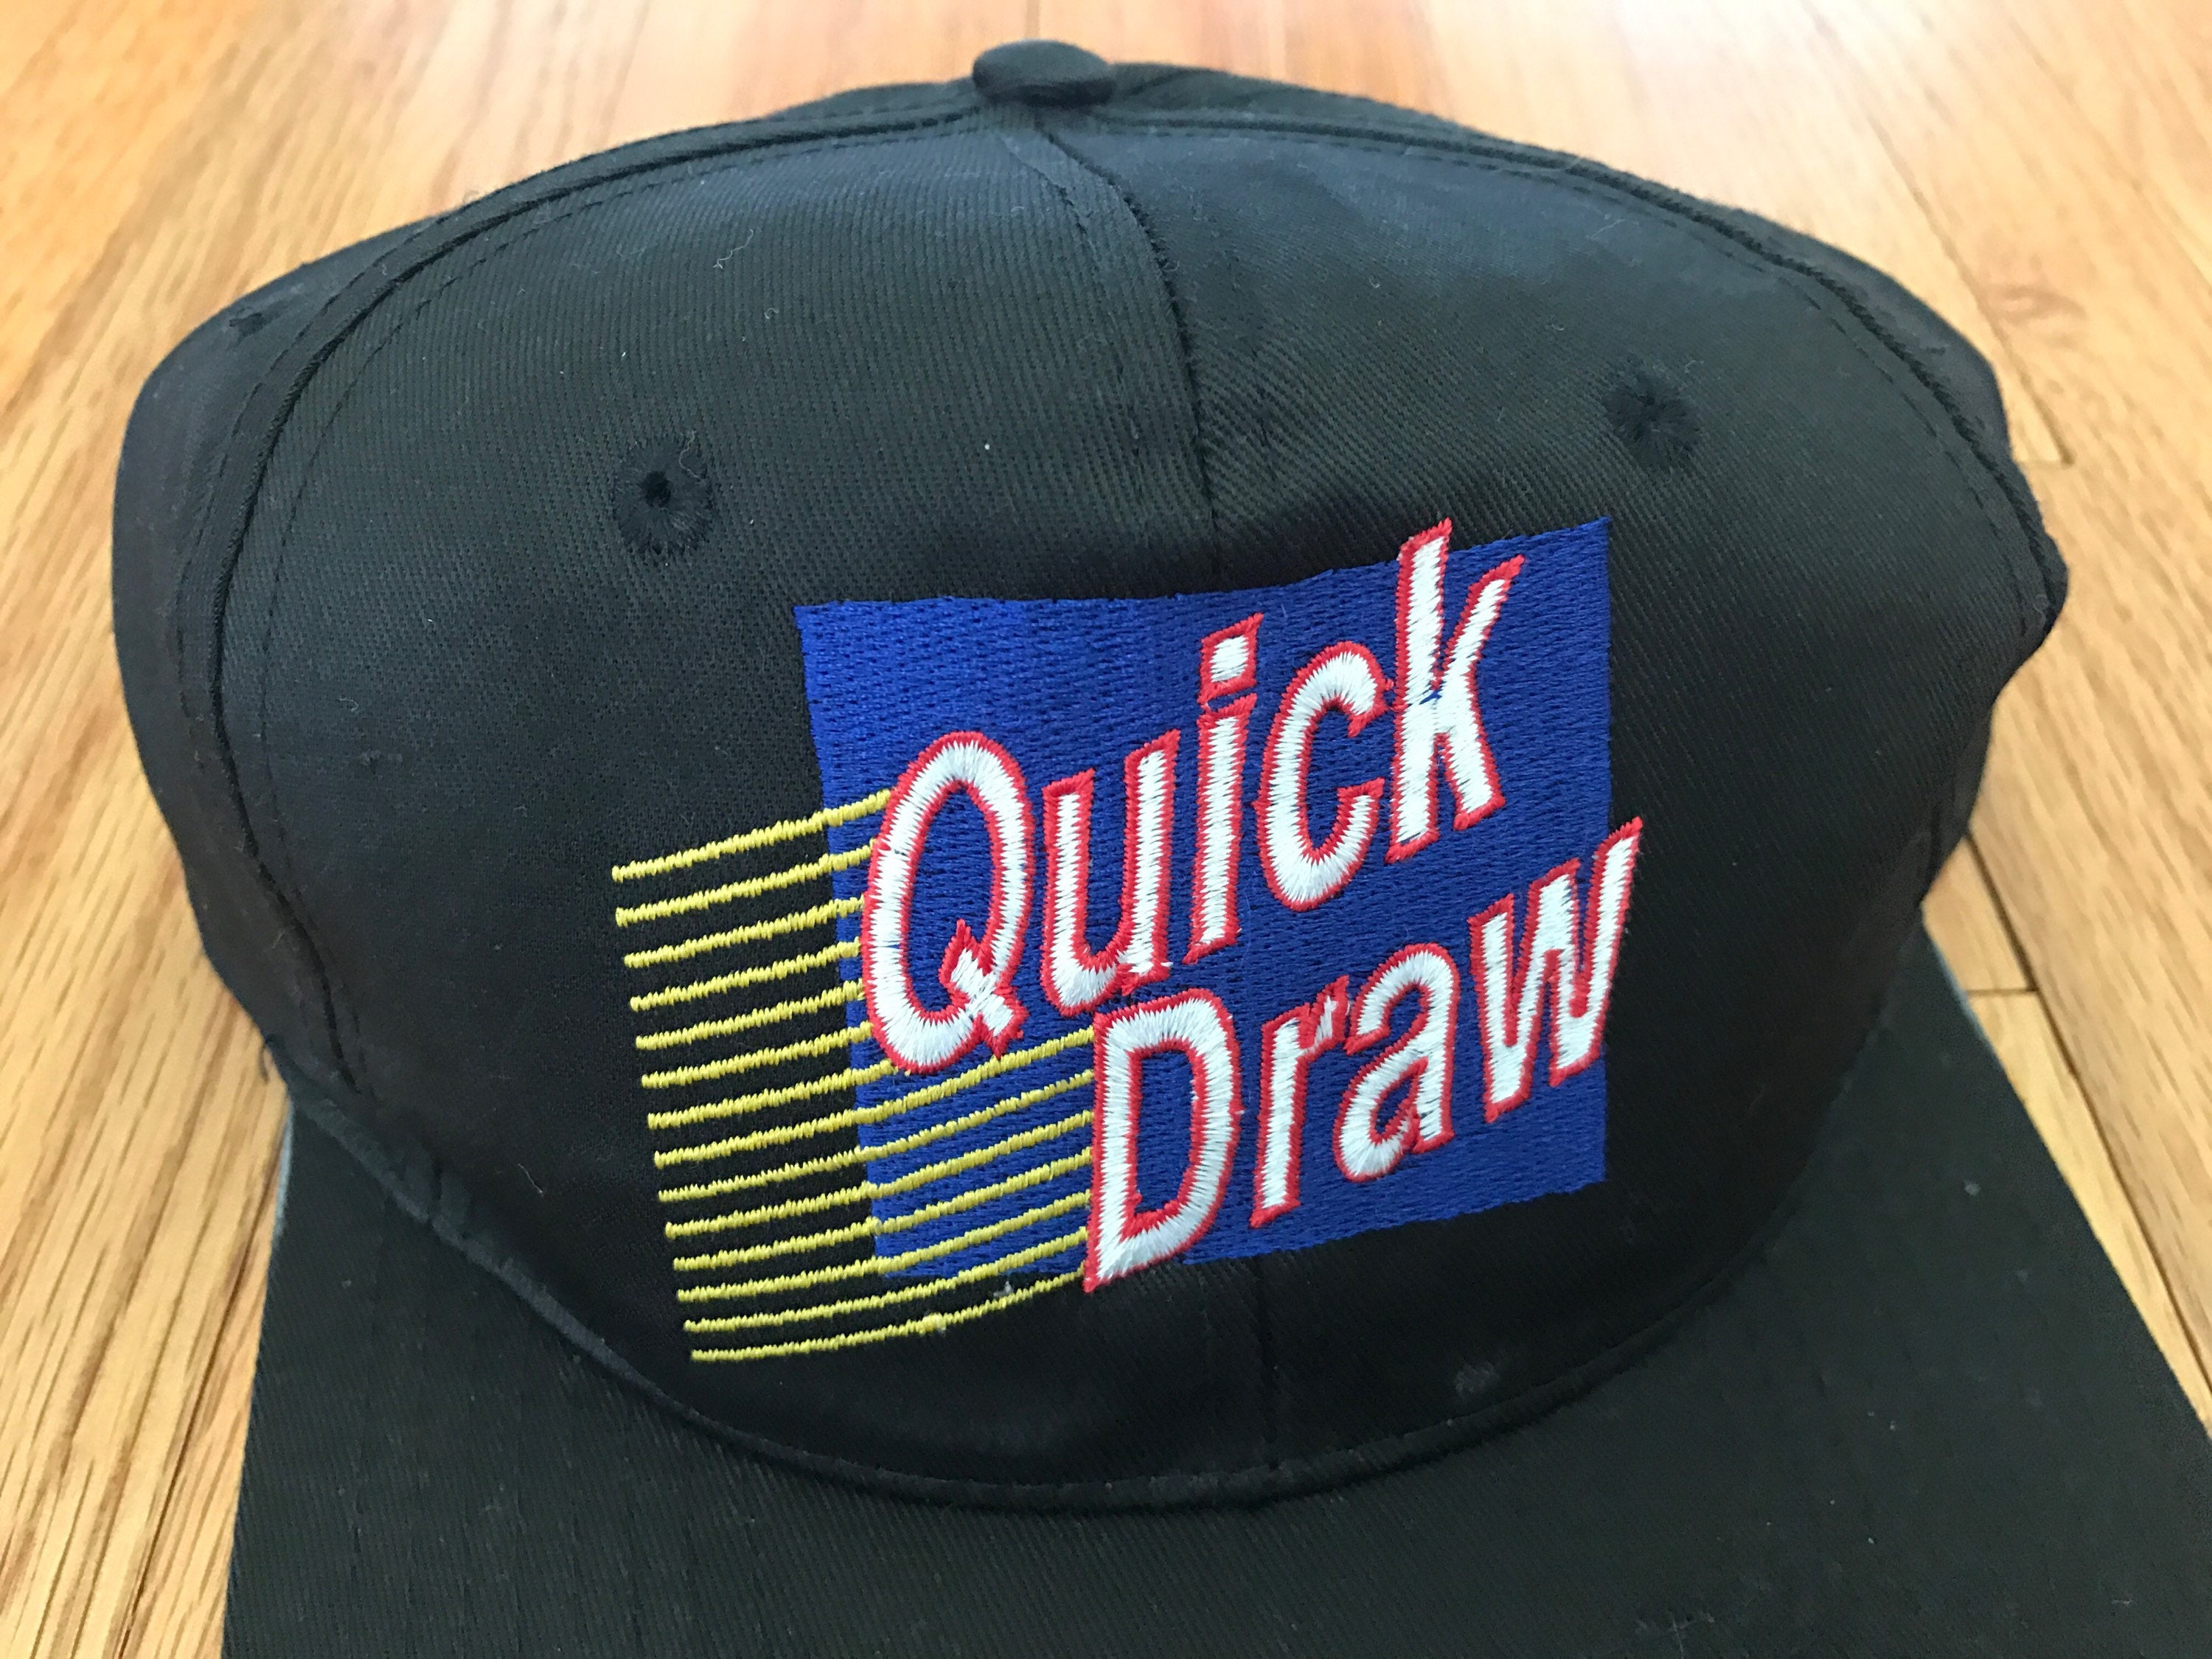 1003d4295455a Vintage 90s Quick Draw New York Lottery Rare Black Snapback Hat ...